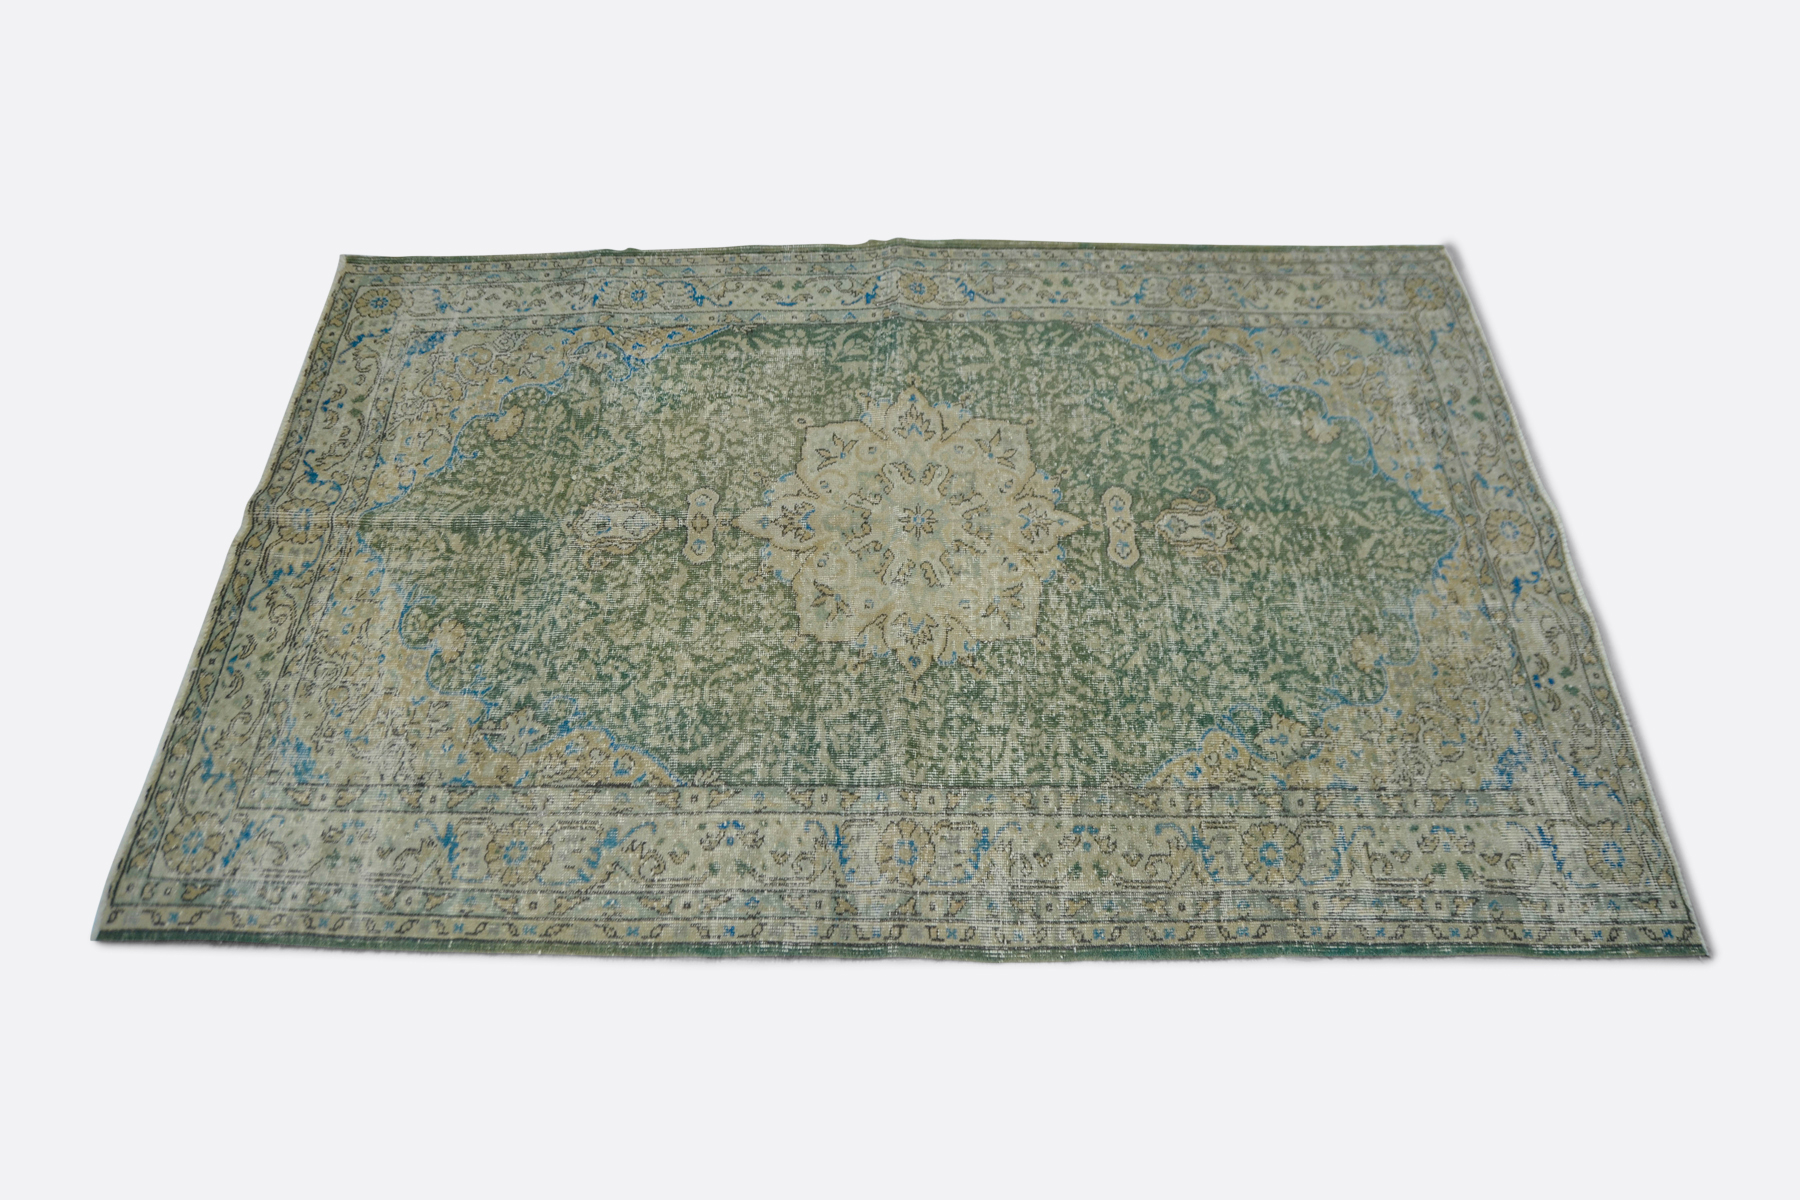 The Modern persian-rug-240-154-front